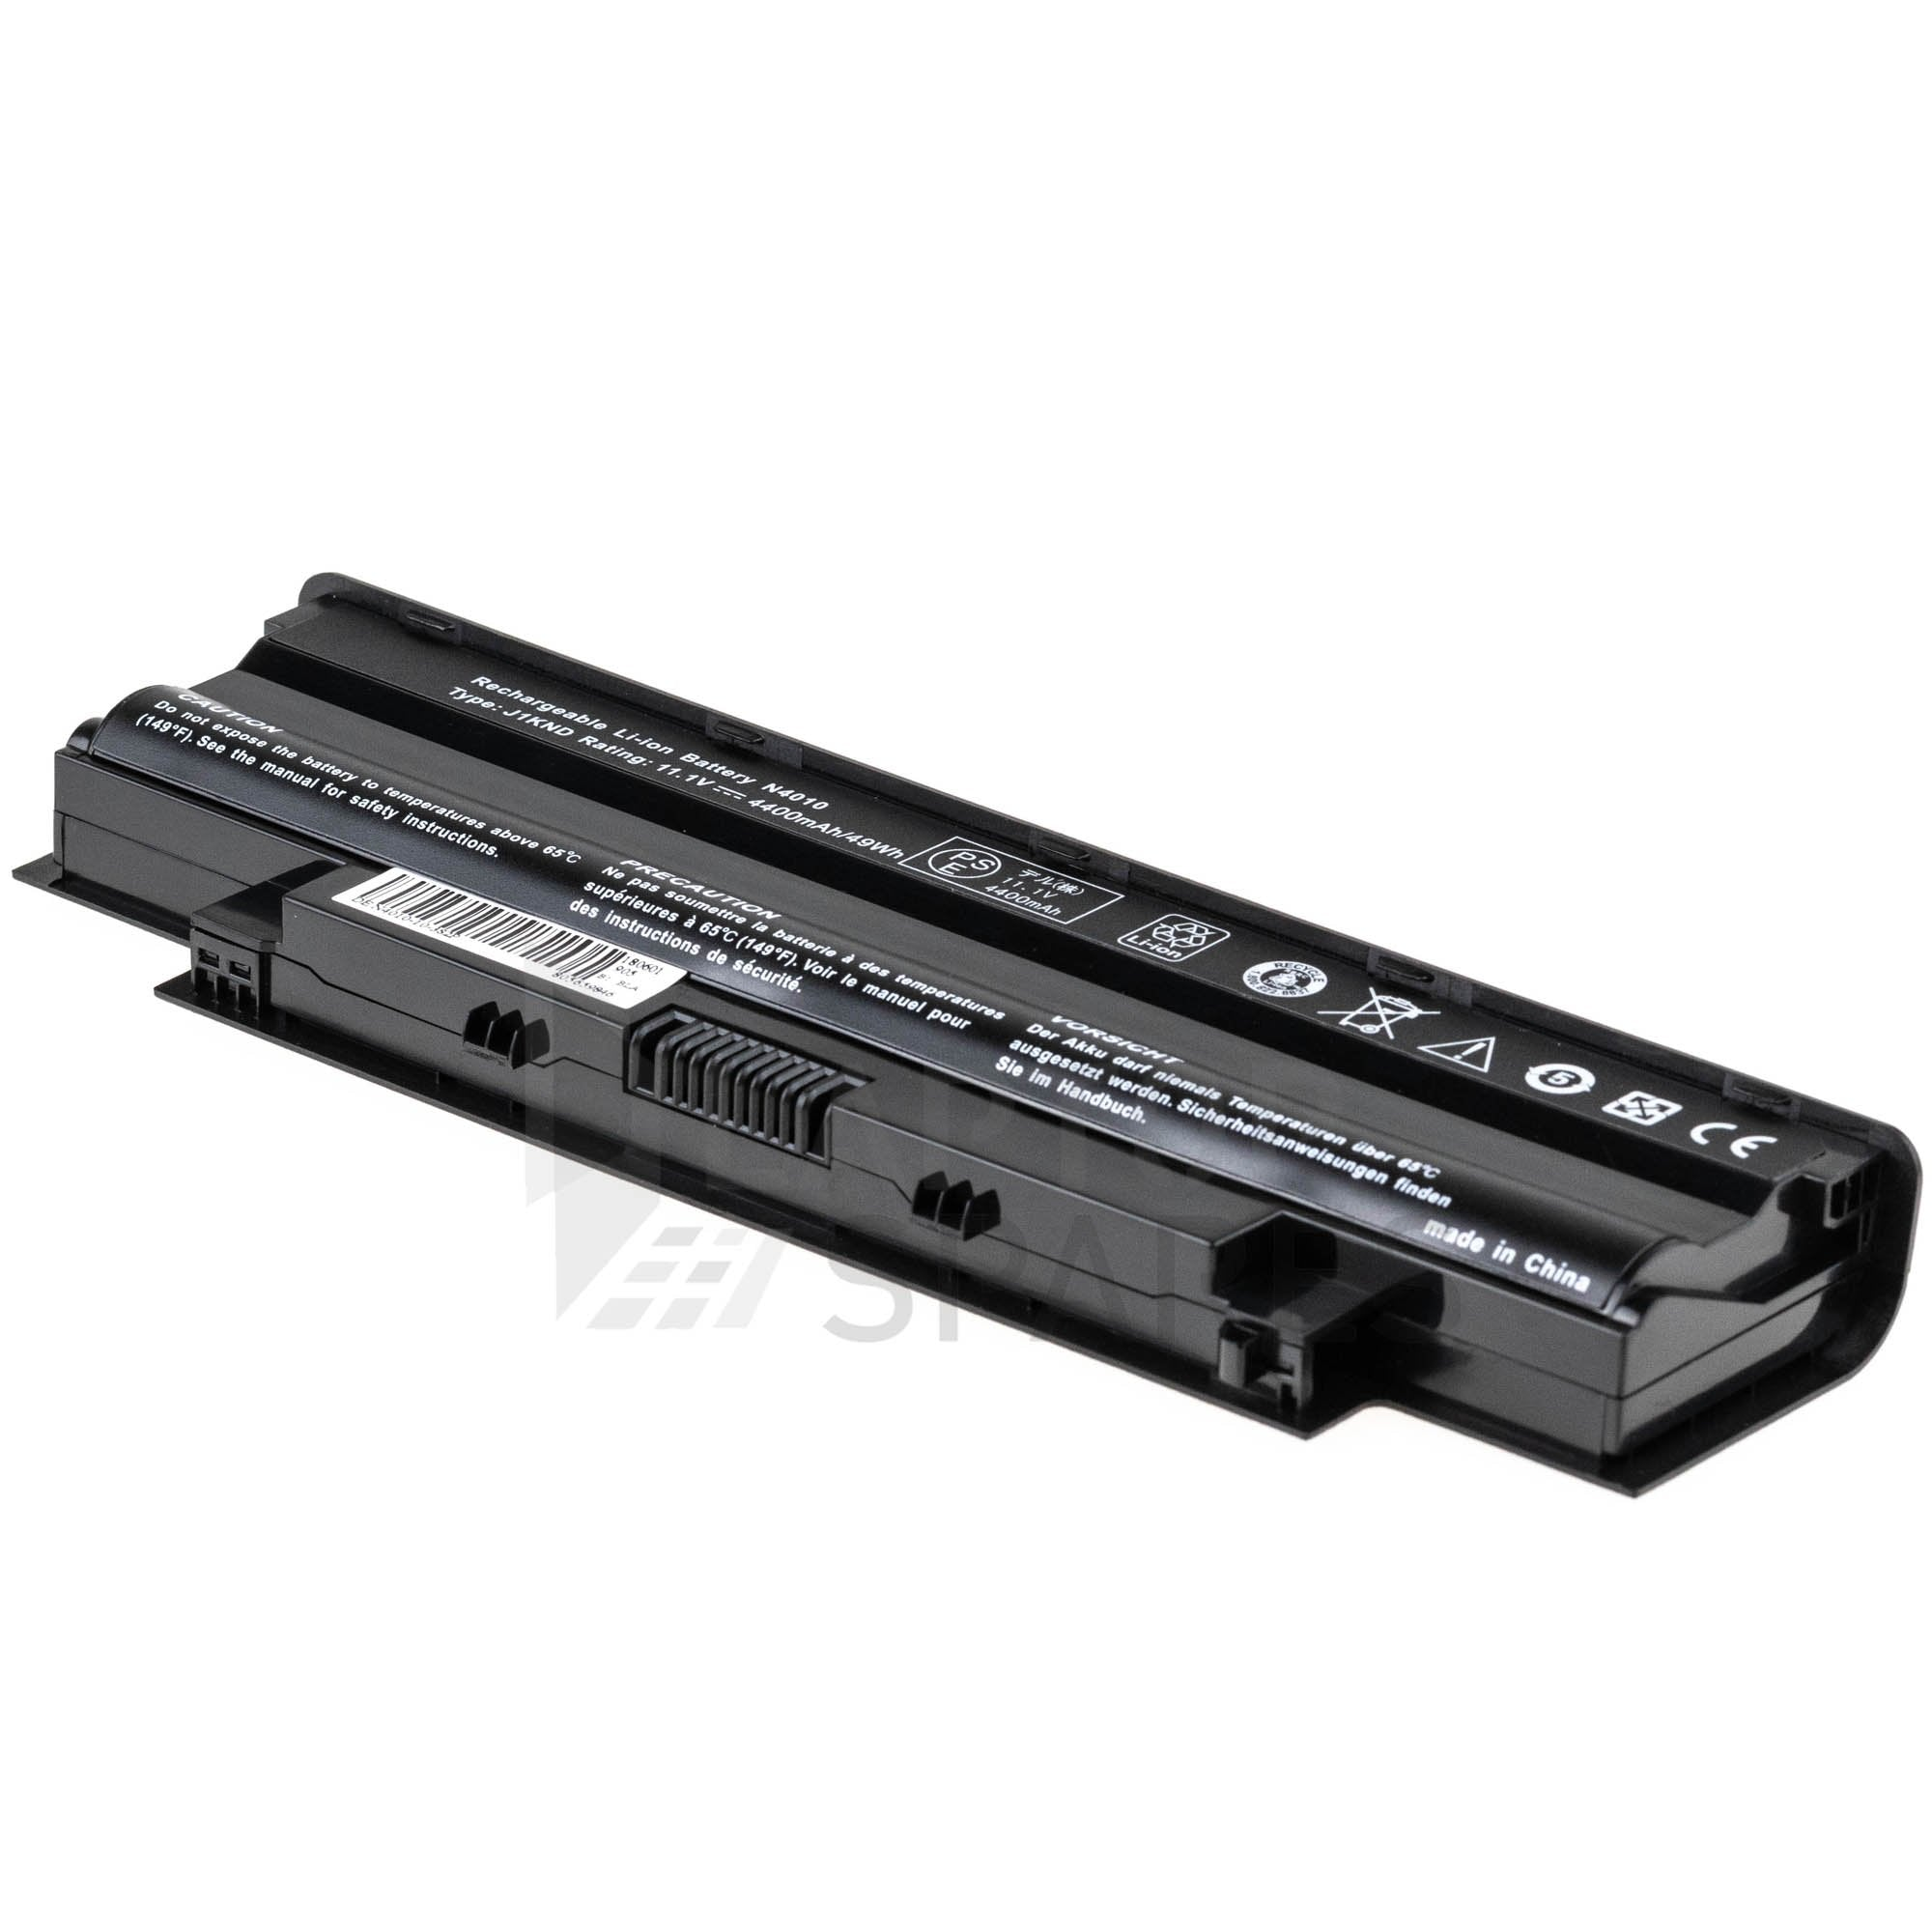 Dell Vostro 1450 4400mAh 6 Cell Battery